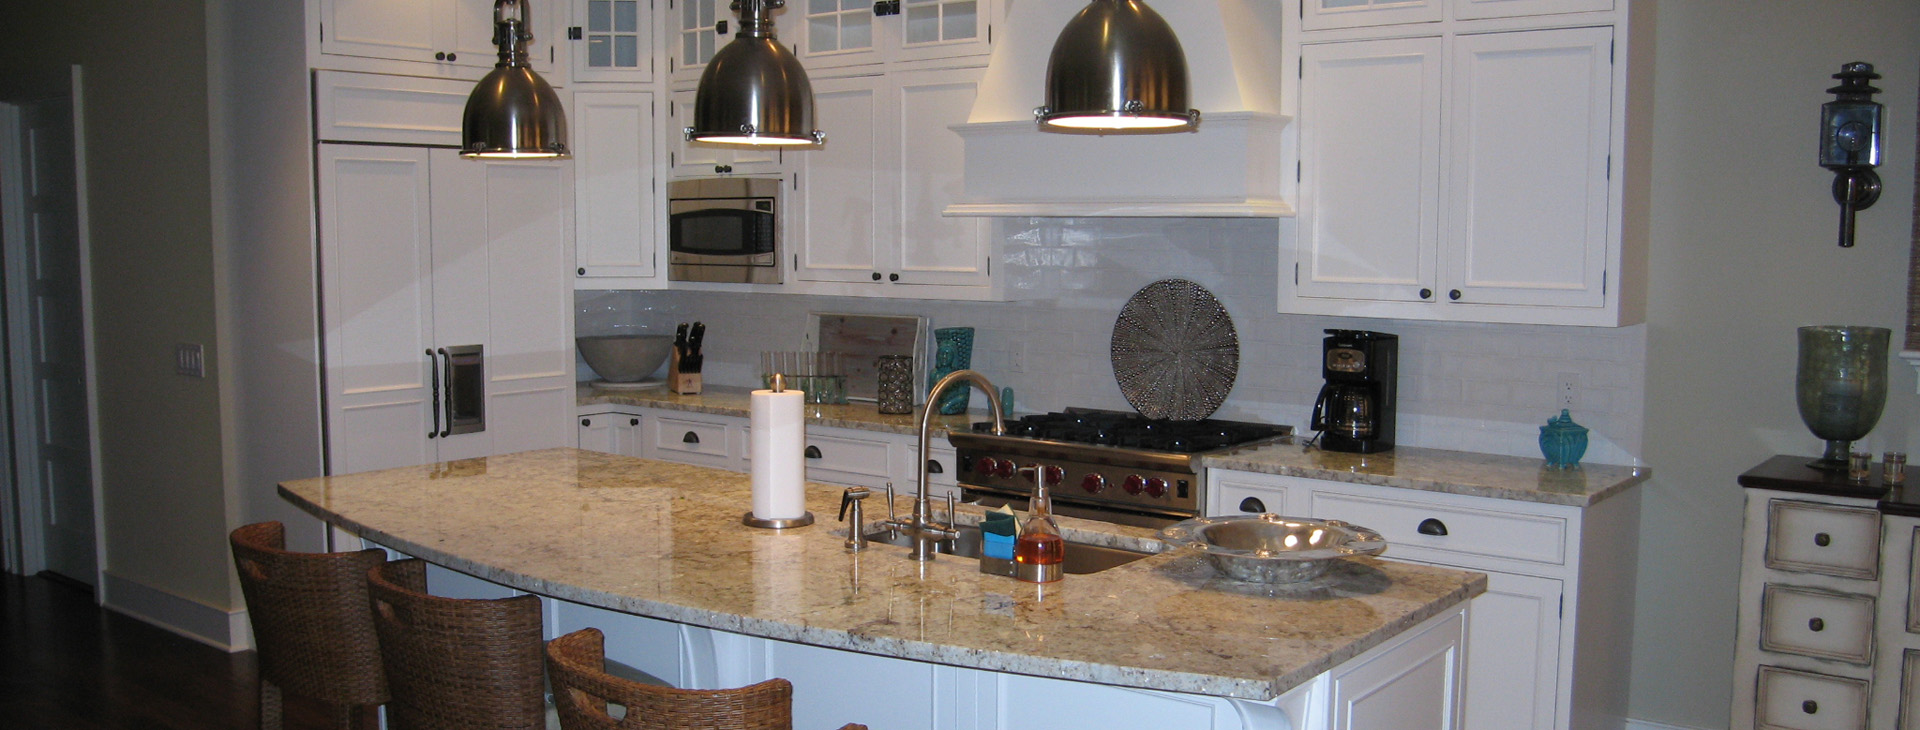 custom kitchens by chuck | kitchen, bathroom, countertop, cabinets